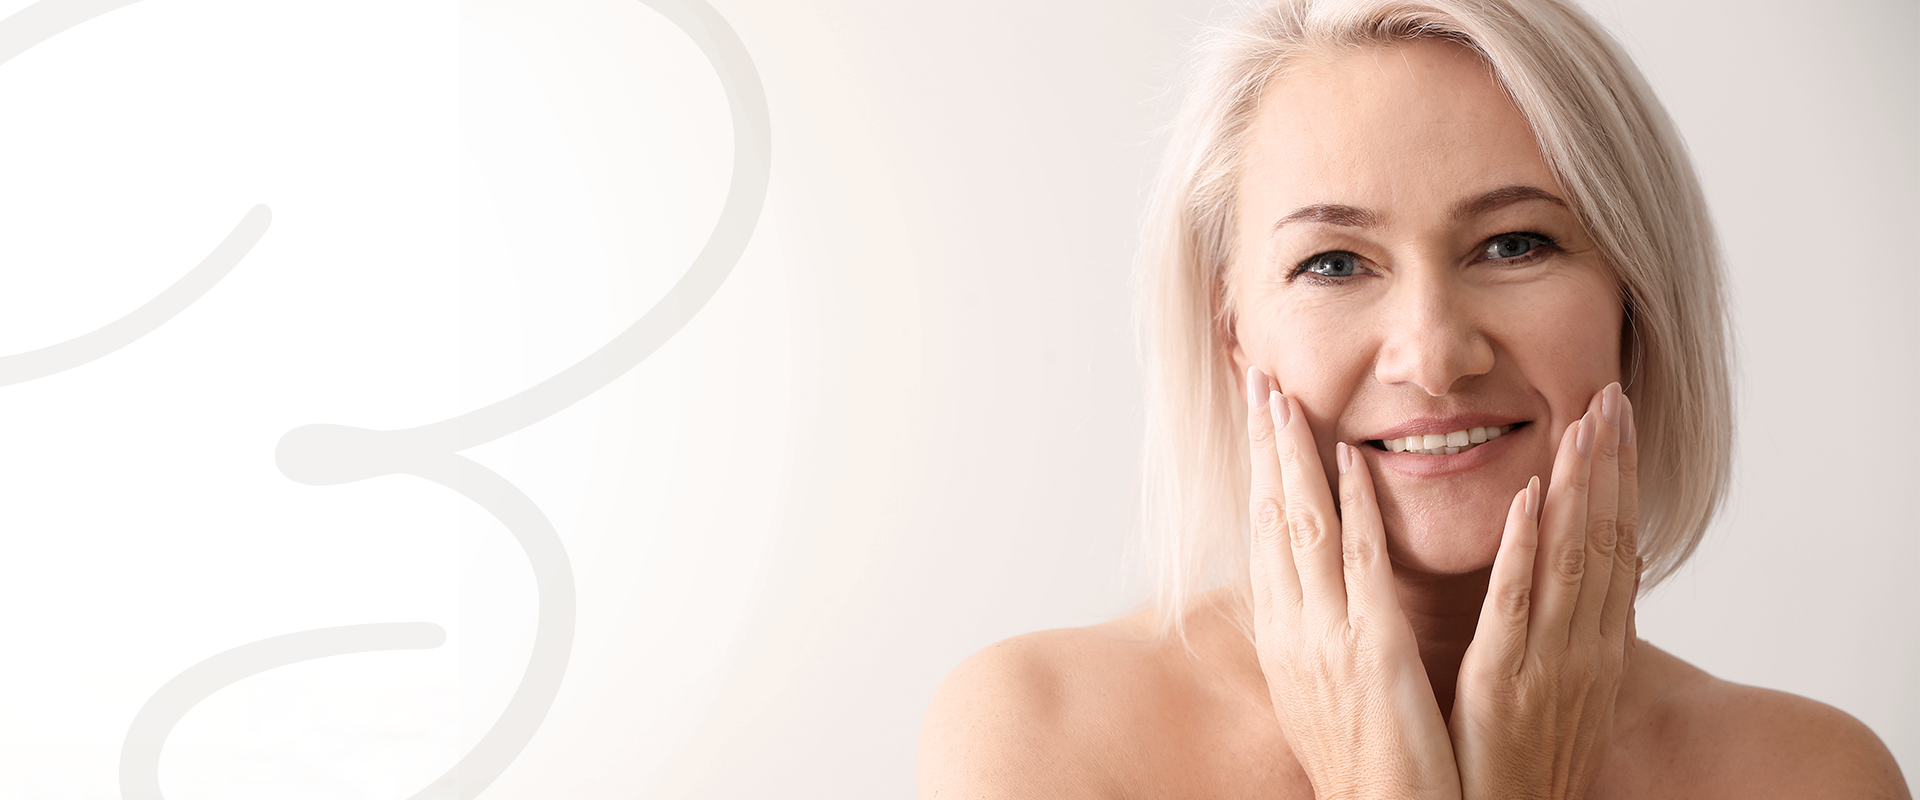 Middle-aged woman enjoying the results of her IPL photo facial